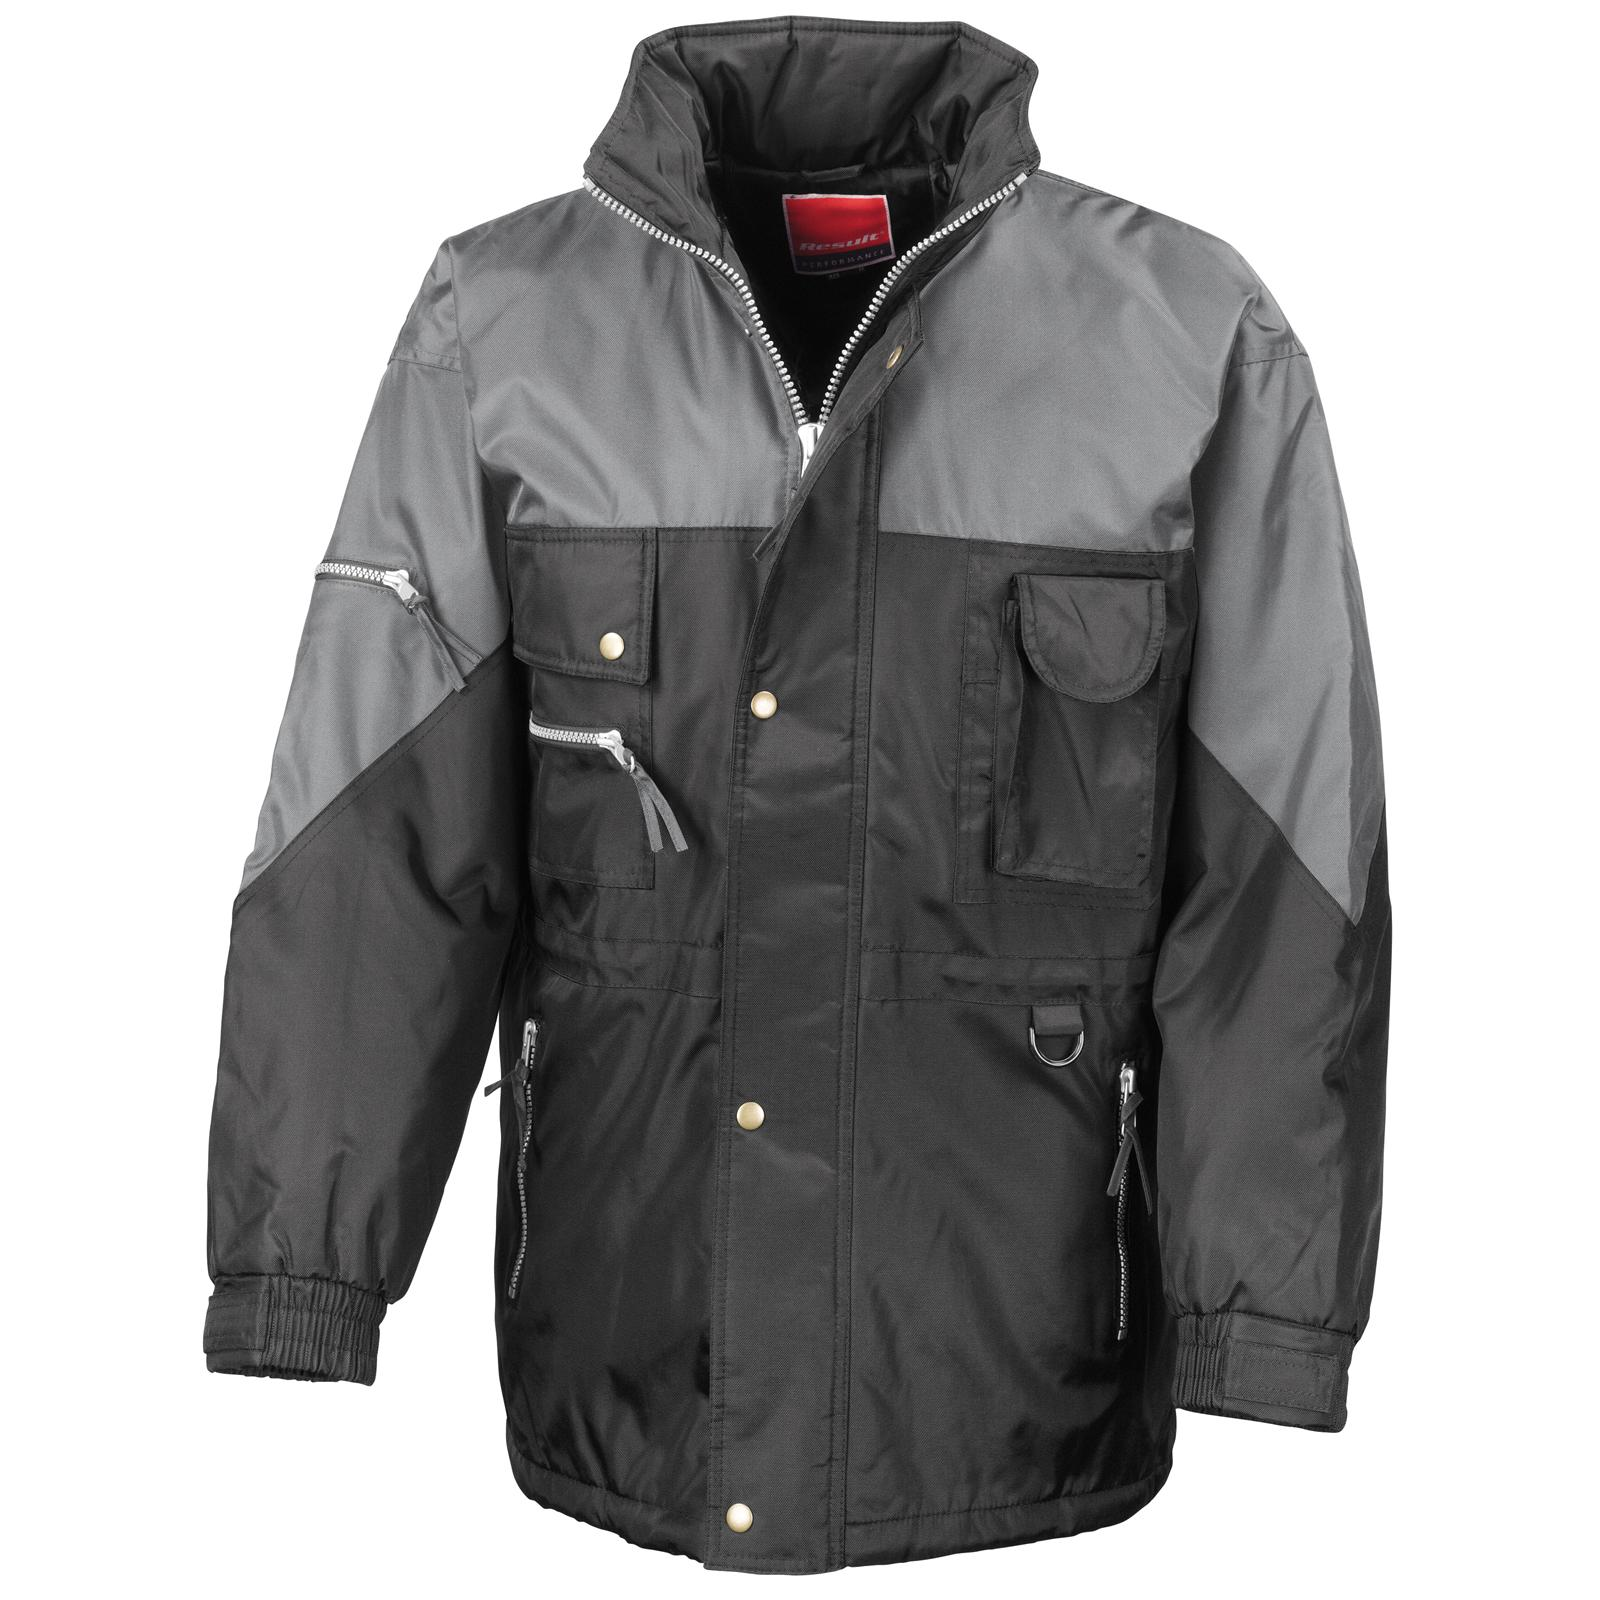 New RESULT Mens Winter Casual Hi Active Waterproof Jacket in 5